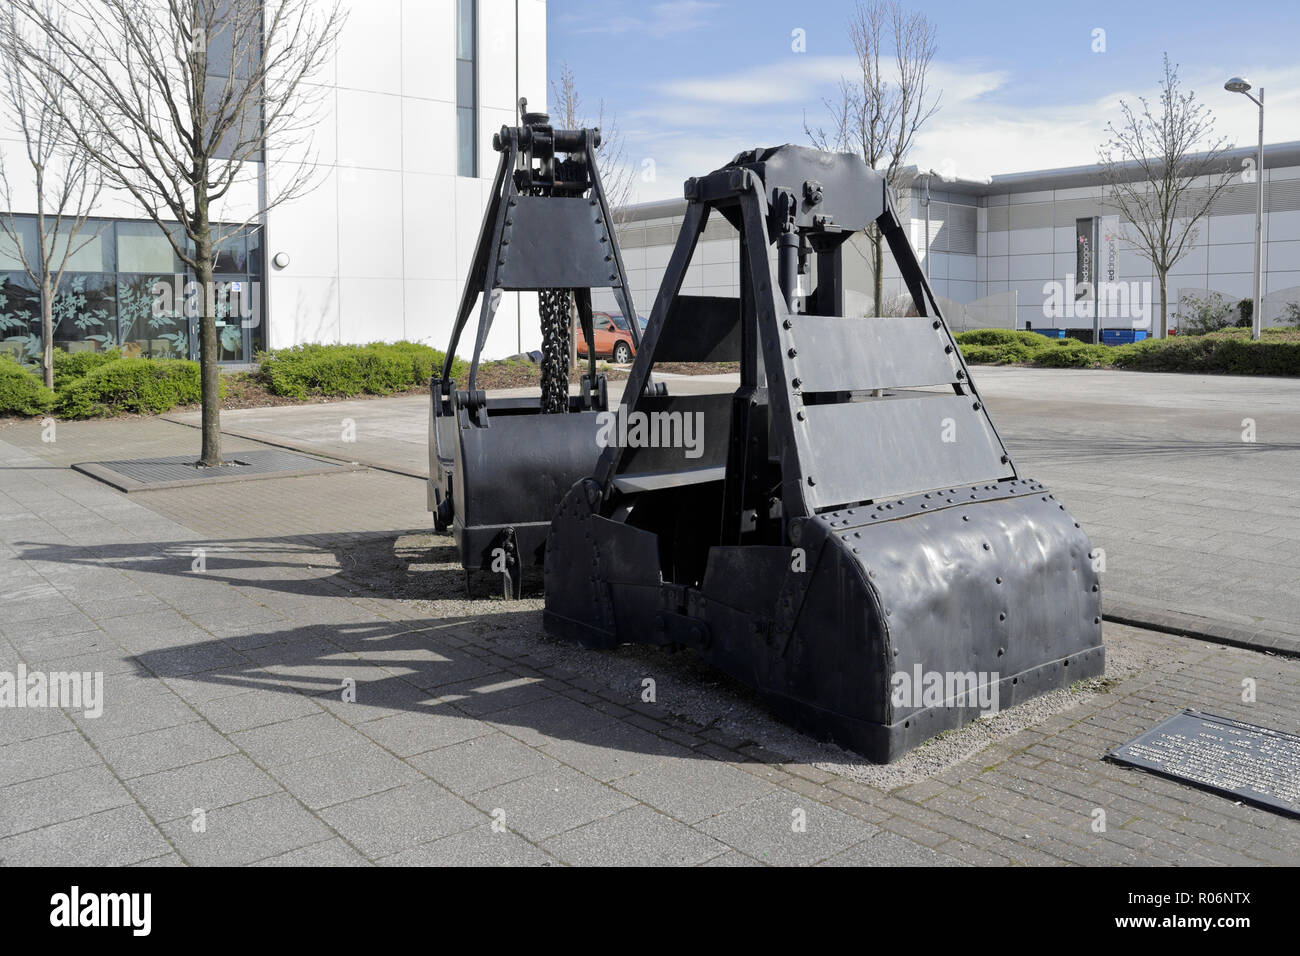 Crane coal grabs, public display of old dock machinery, Cardiff Bay Wales UK - Stock Image